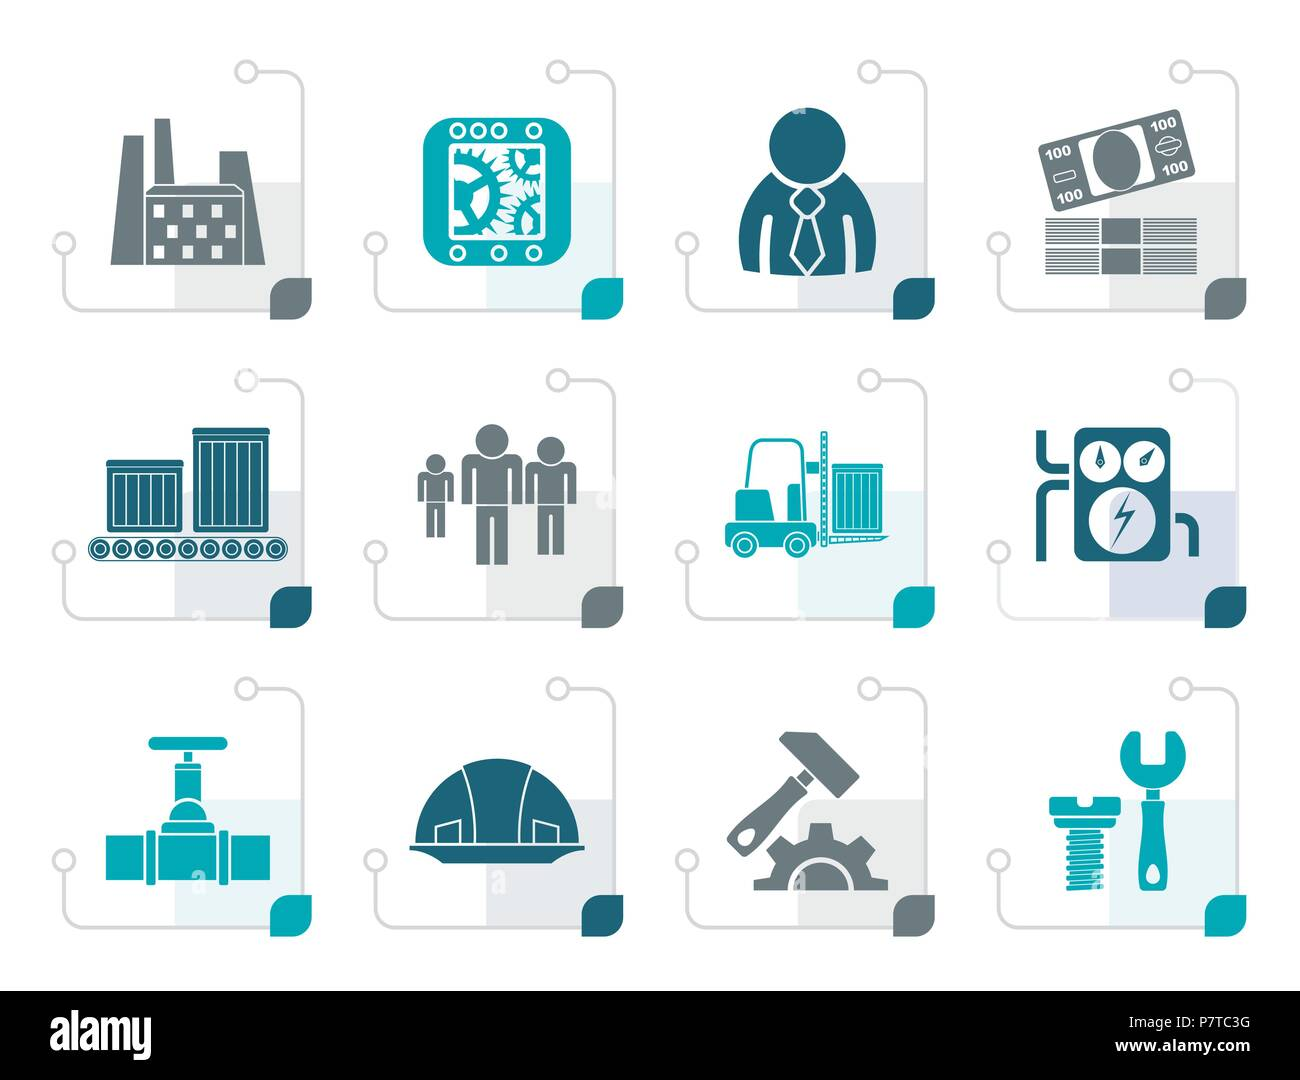 Assembly Icon: Assembly Line Manager Stock Photos & Assembly Line Manager